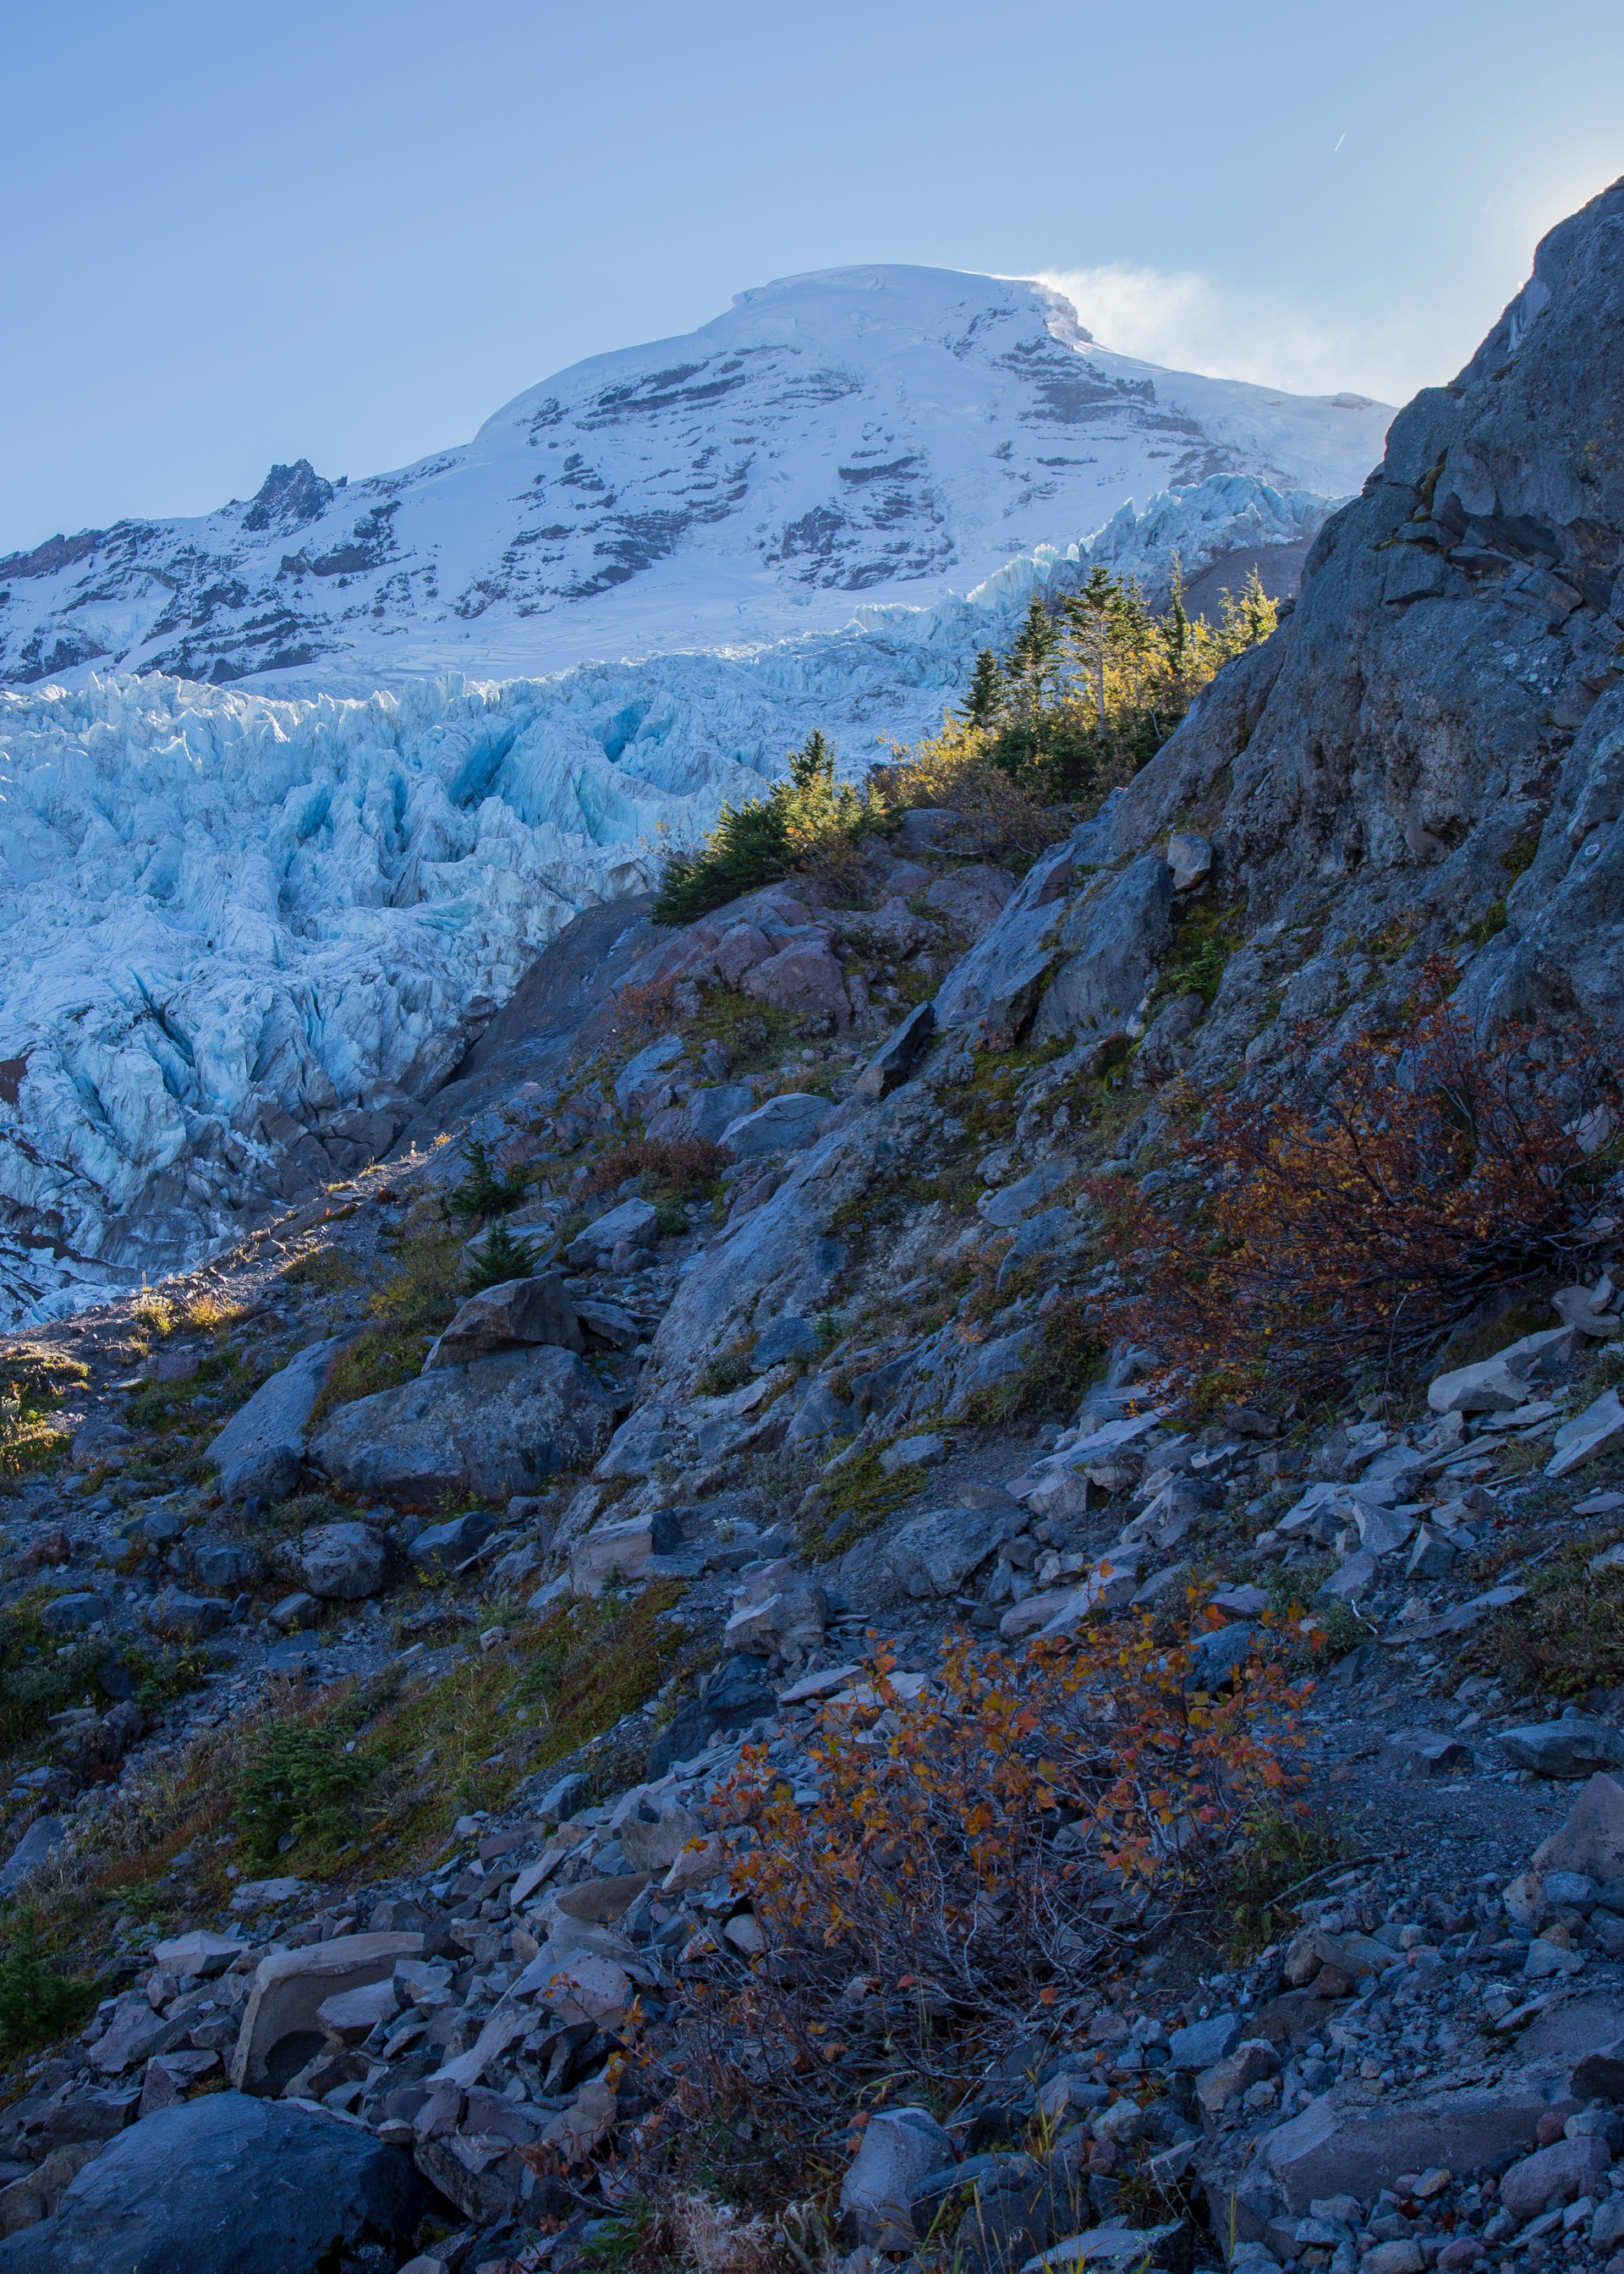 There's still quite a bit of glacier left on this side of the mountain, protected from the sun.